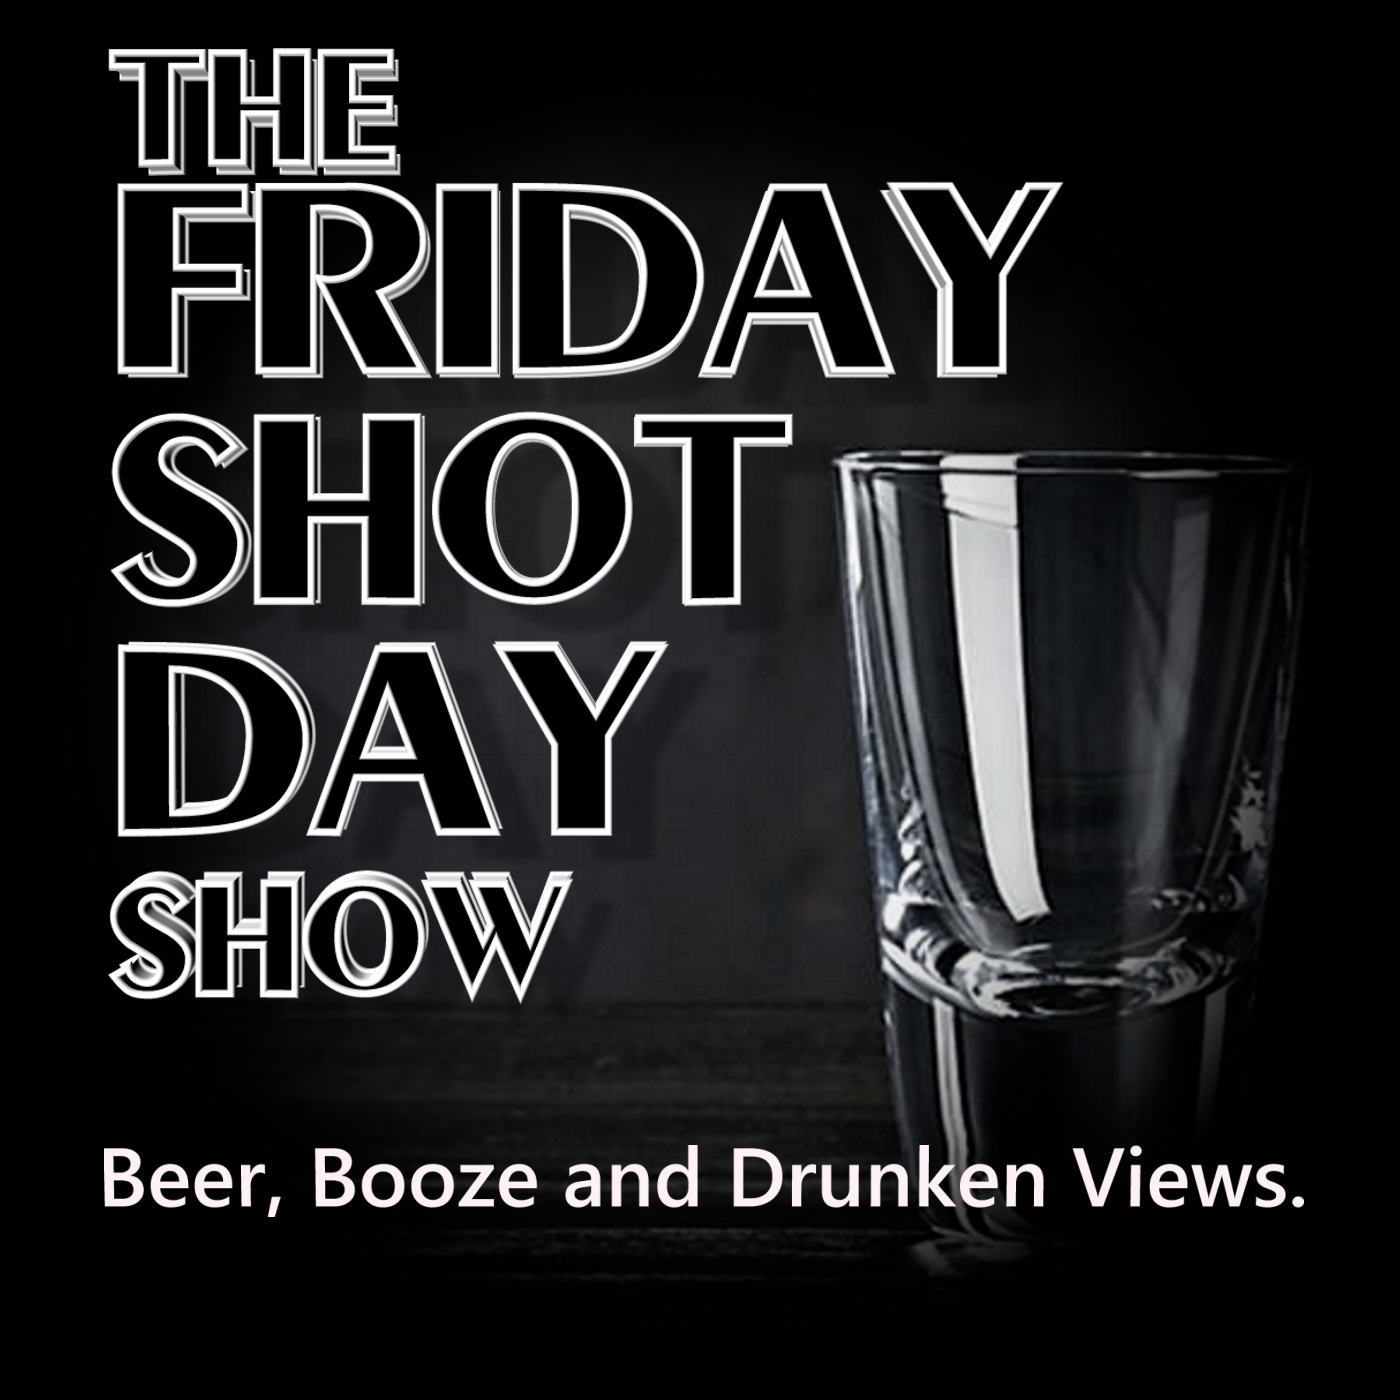 The Friday Shot Day Show